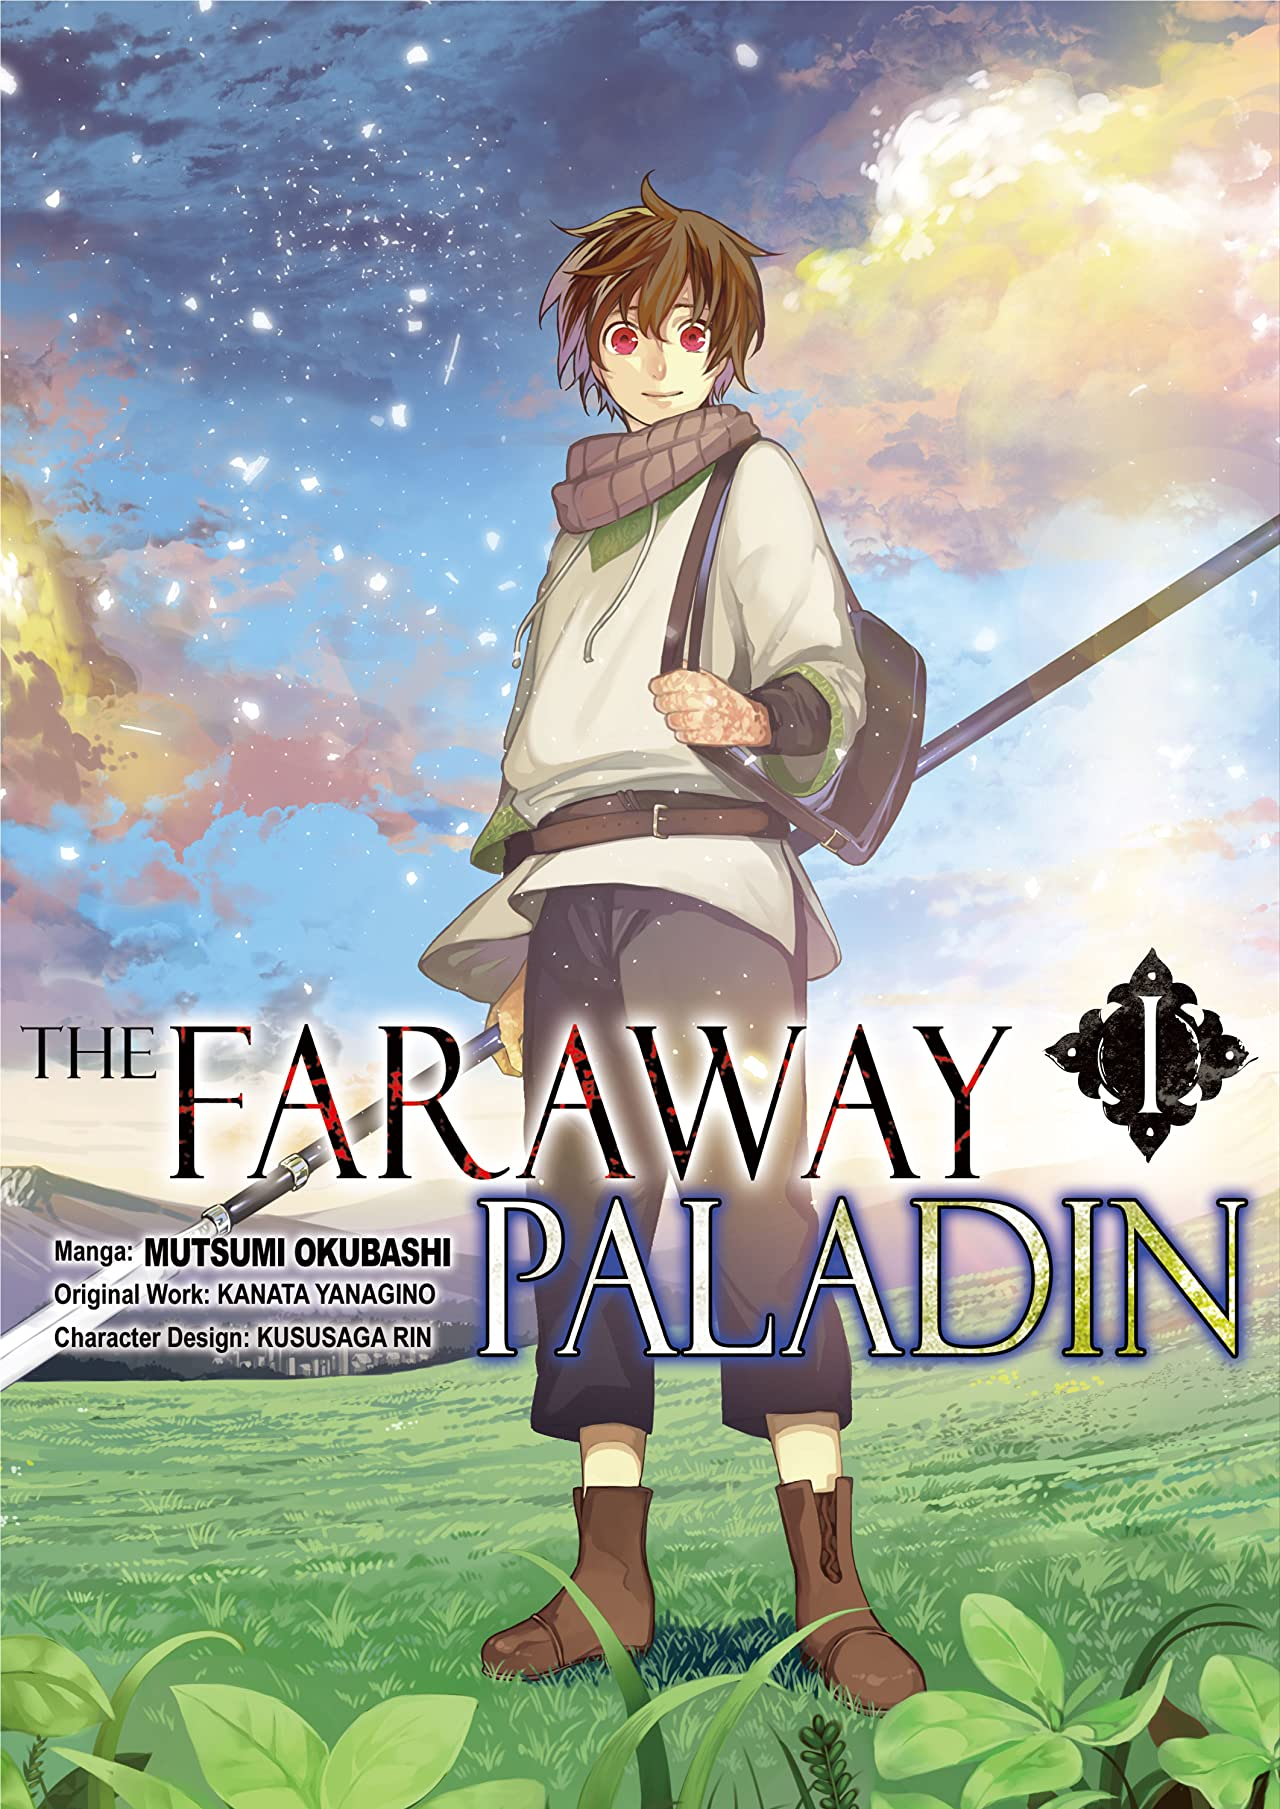 The Faraway Paladin Vol. 1